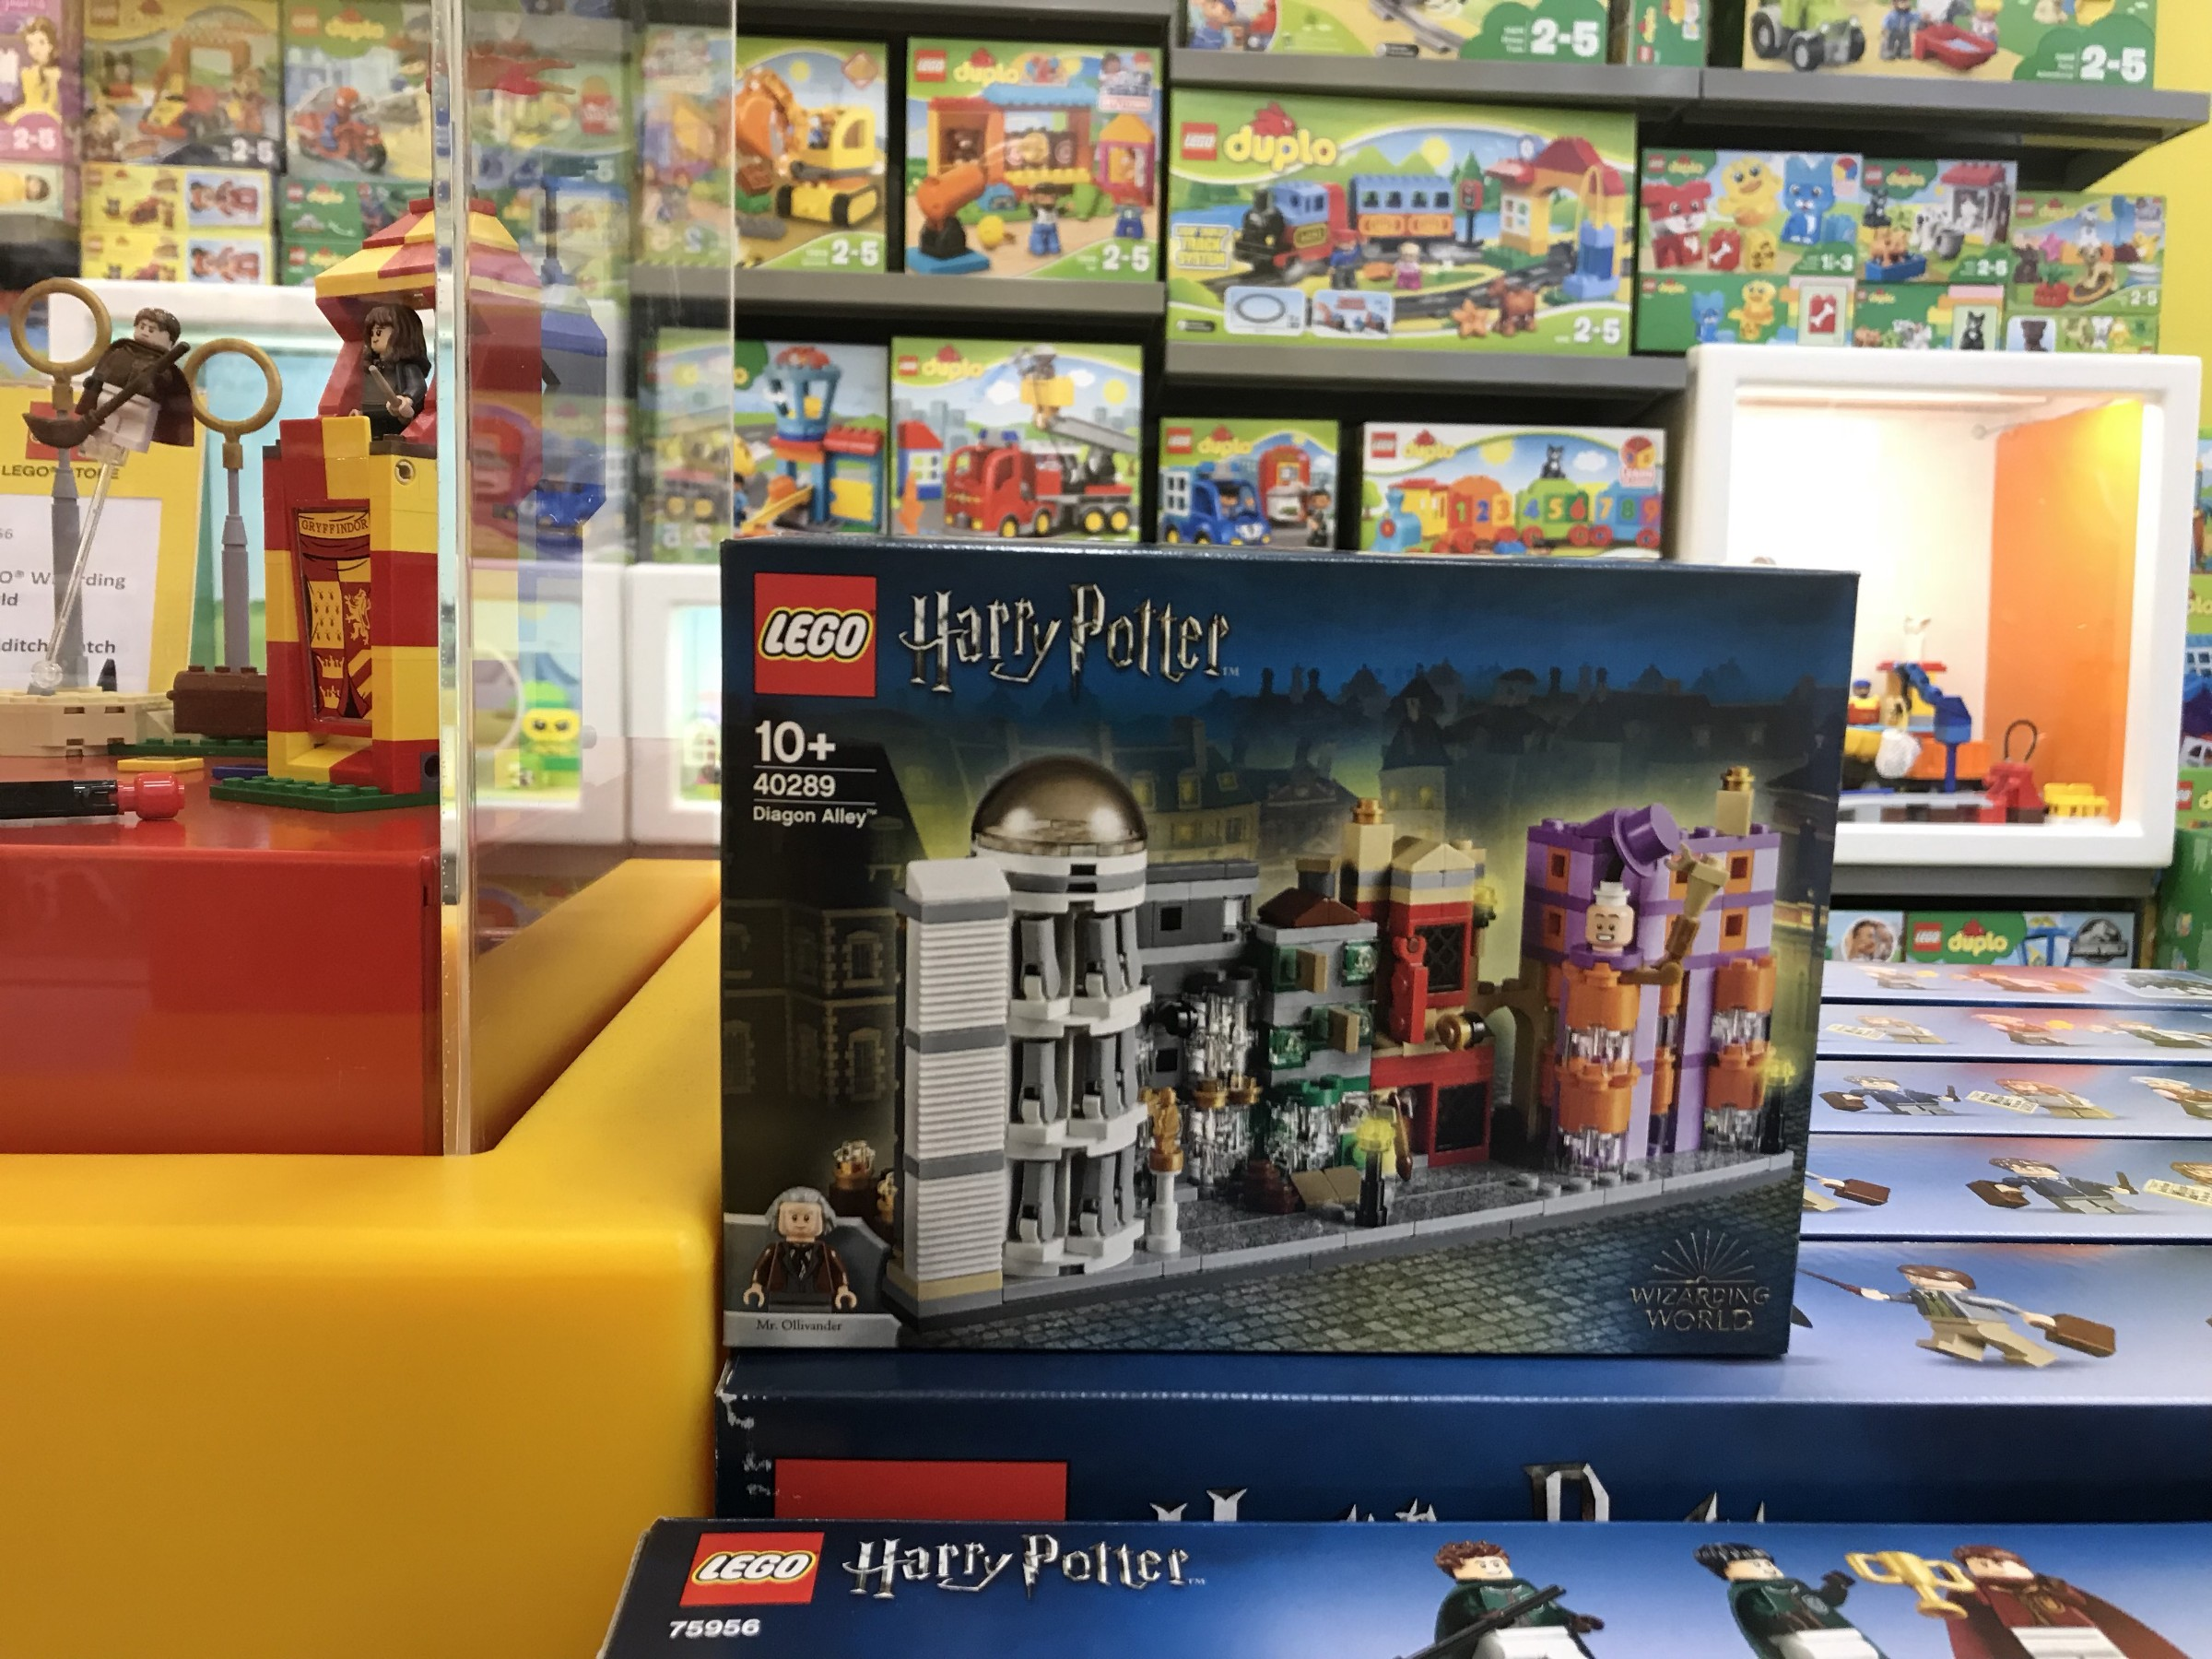 Lego Diagon Alley Set Spotted The Leaky Cauldron Org The